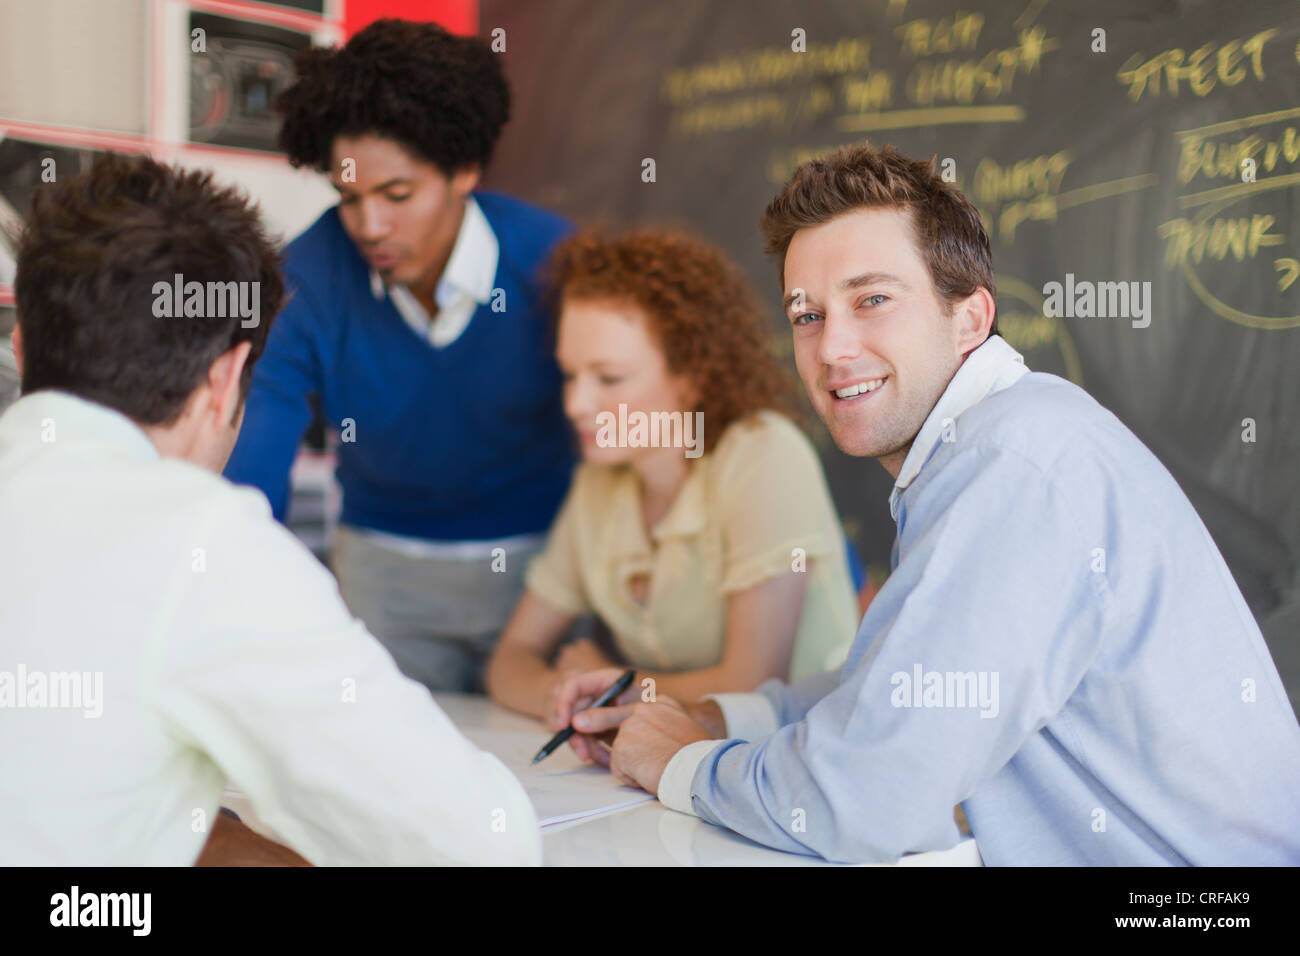 Businessman smiling in meeting Photo Stock